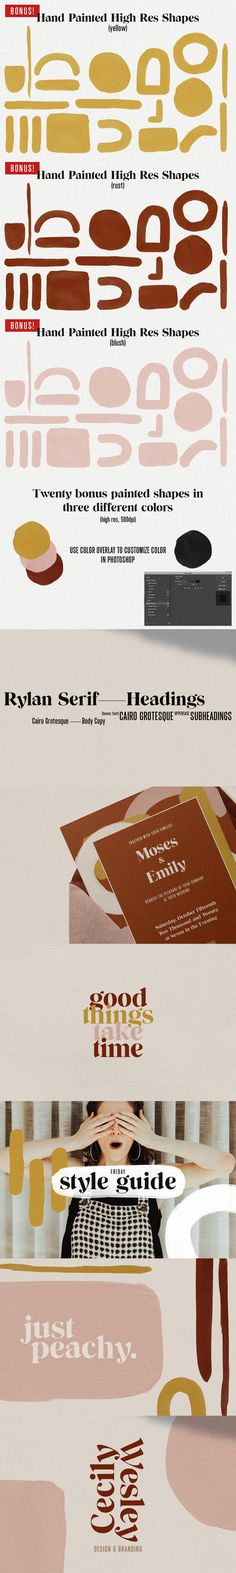 Rylan is the classic serif I've been looking for in my design work – clean lines, modern serifs, and just a touch of vintage. Upper And Lowercase Letters, Letters And Numbers, Lowercase A, Best Serif Fonts, Modern Fonts, Just Peachy, Color Shapes, Printed Materials, Looking Gorgeous